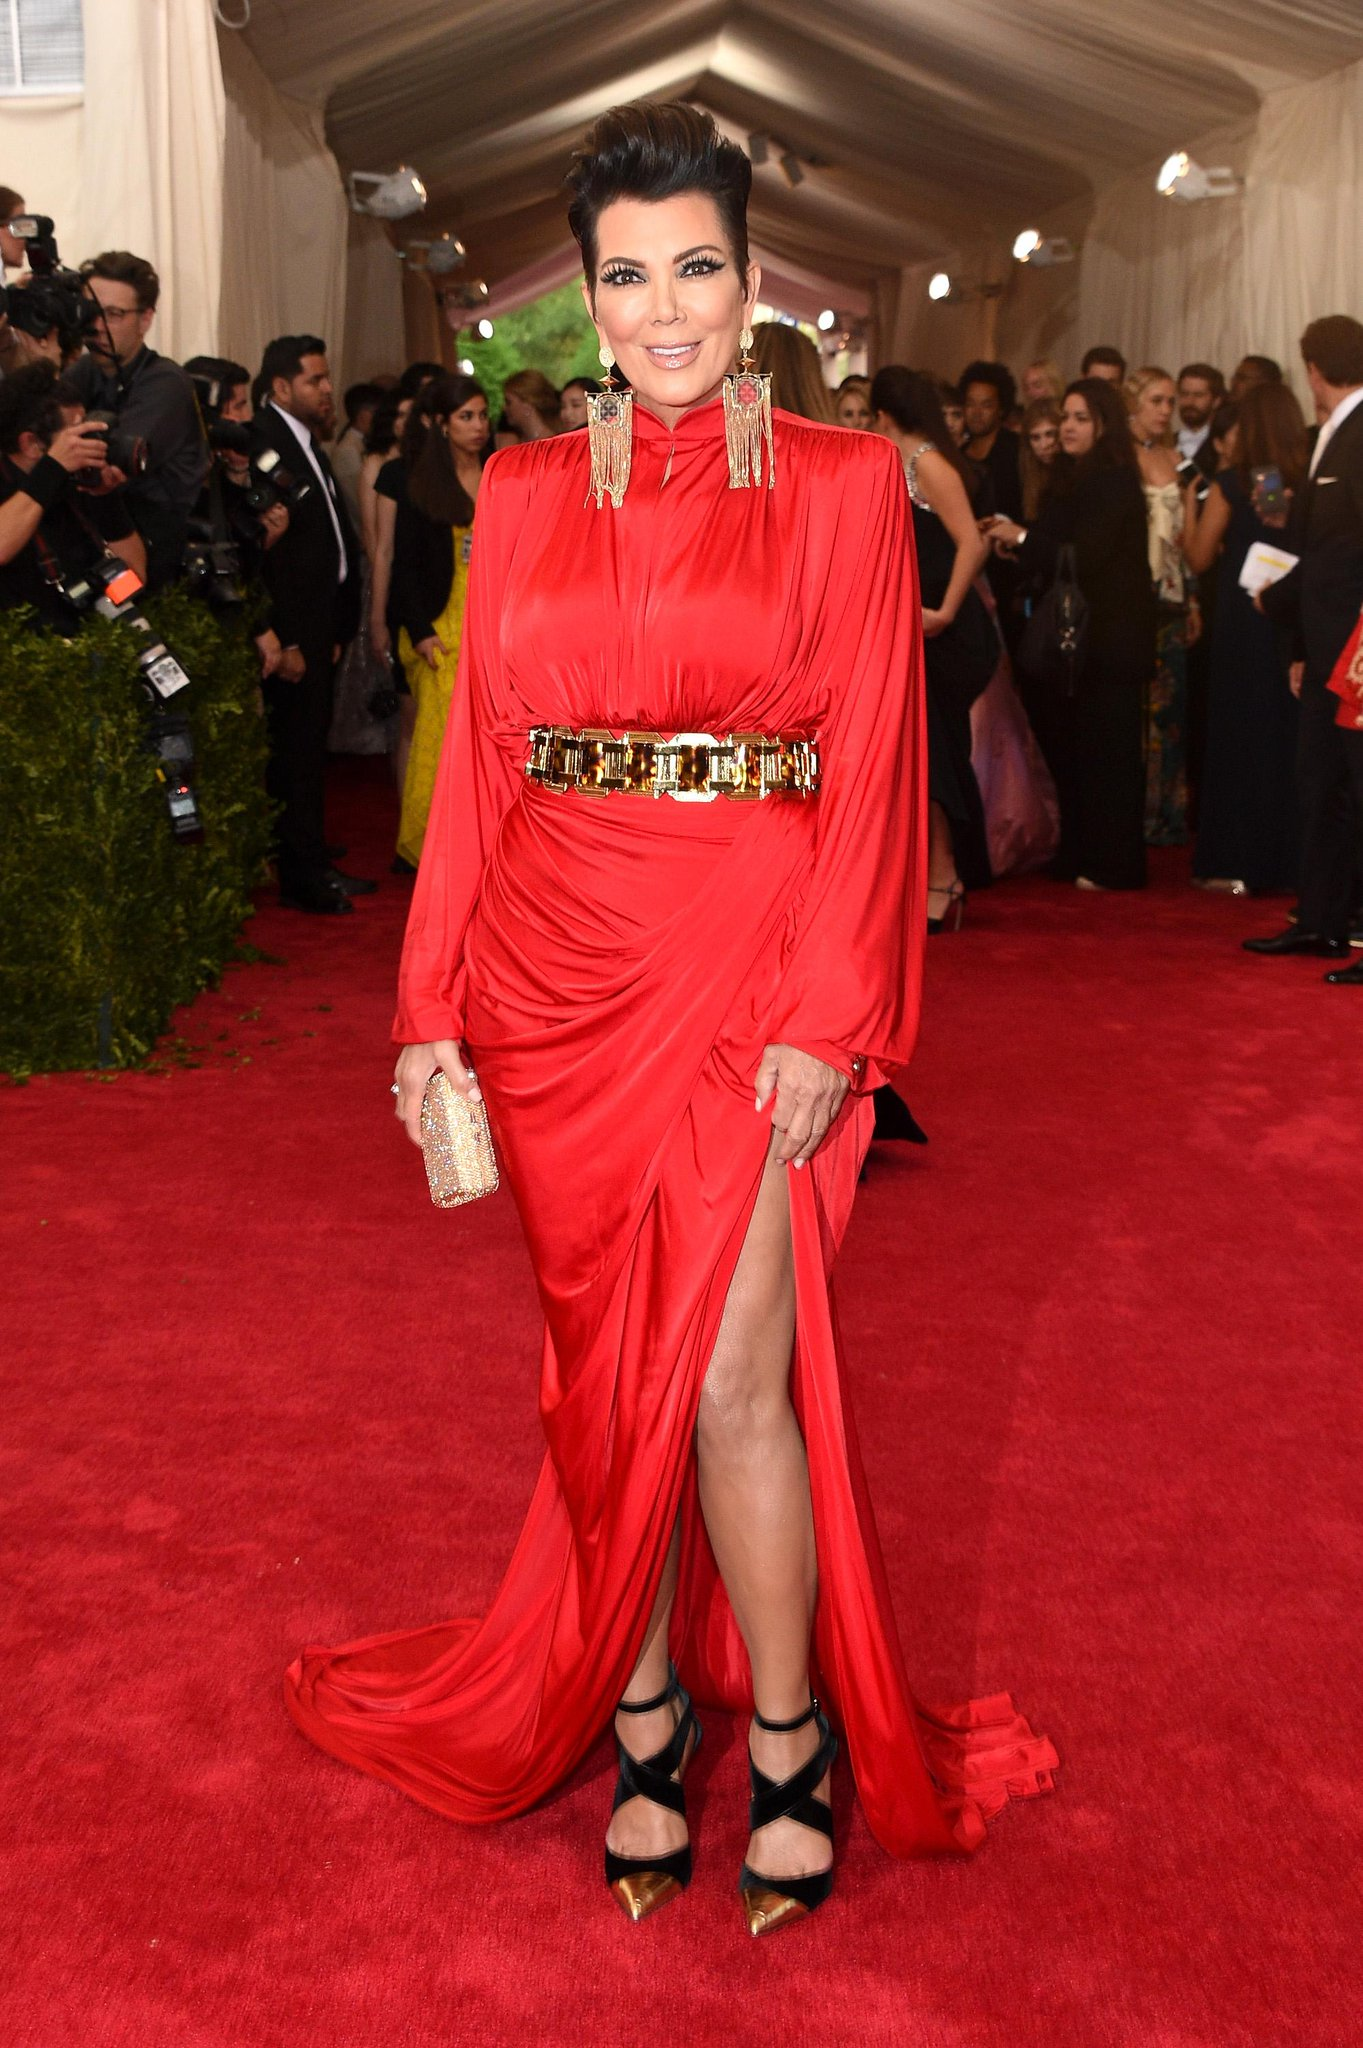 Oh hey there, @KrisJenner! #MetGala http://t.co/zI5Tricvvq